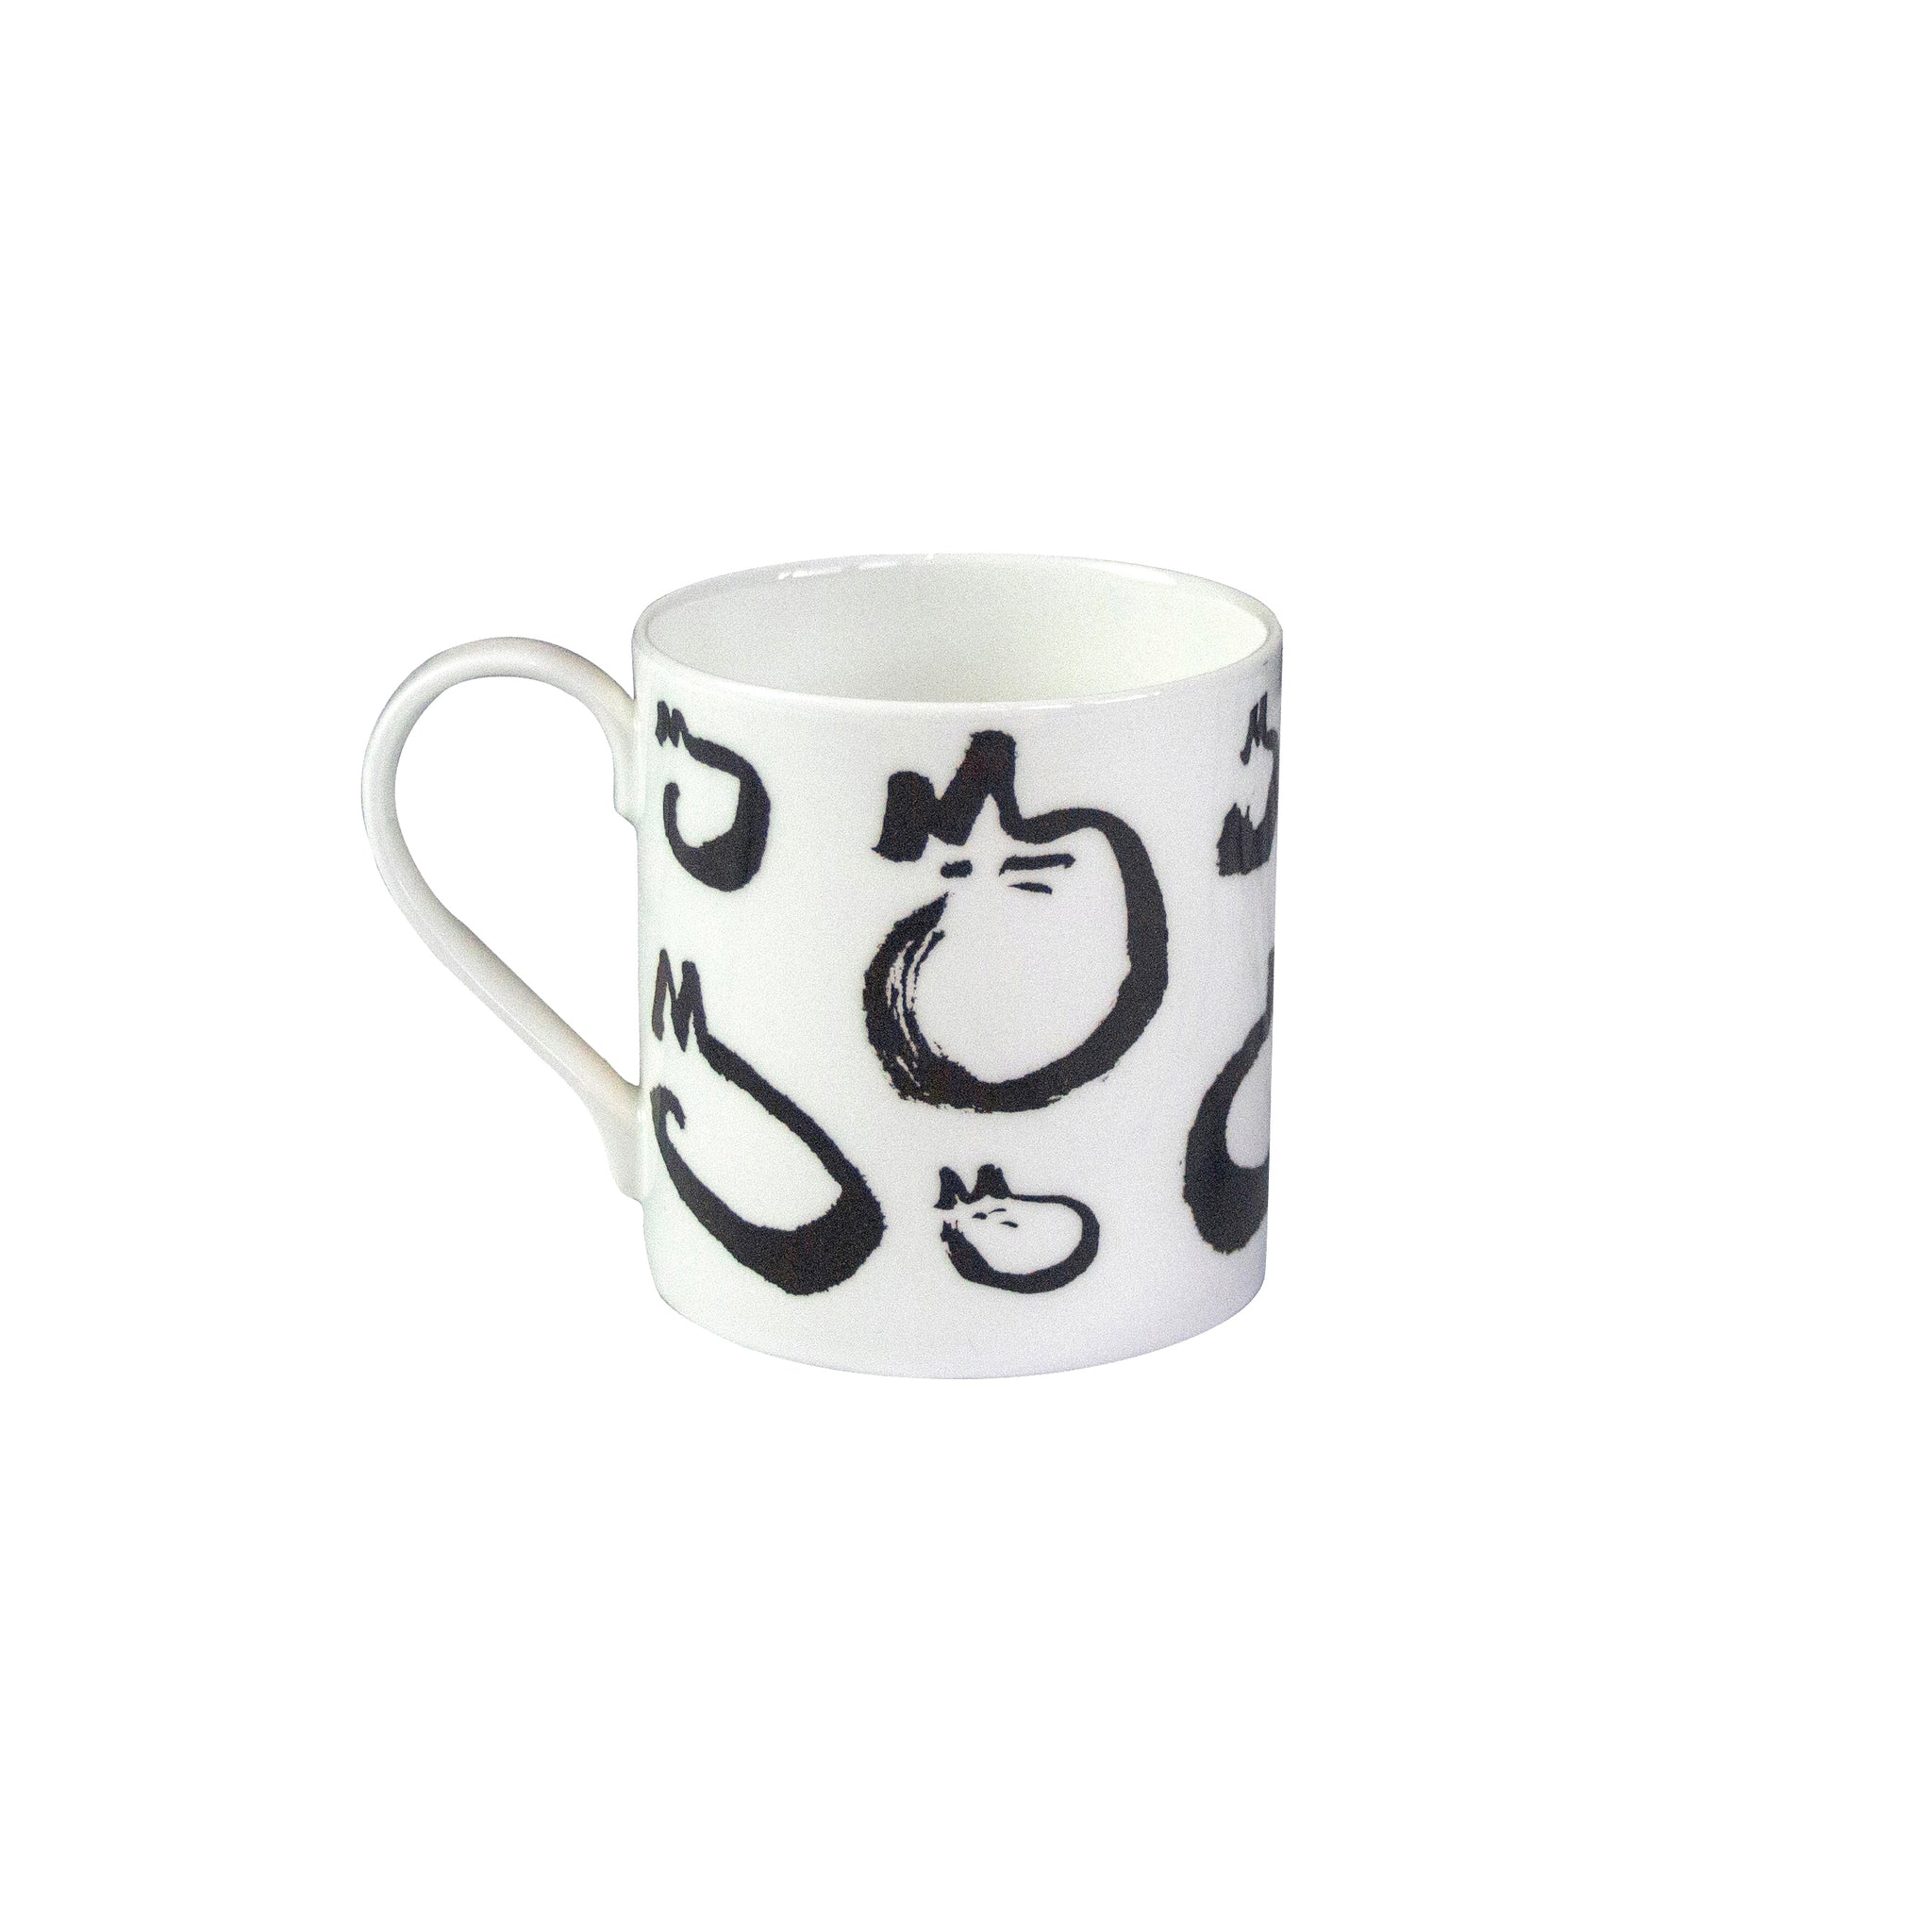 A white china mug with a black and white cat design on it. Catnap Design London.